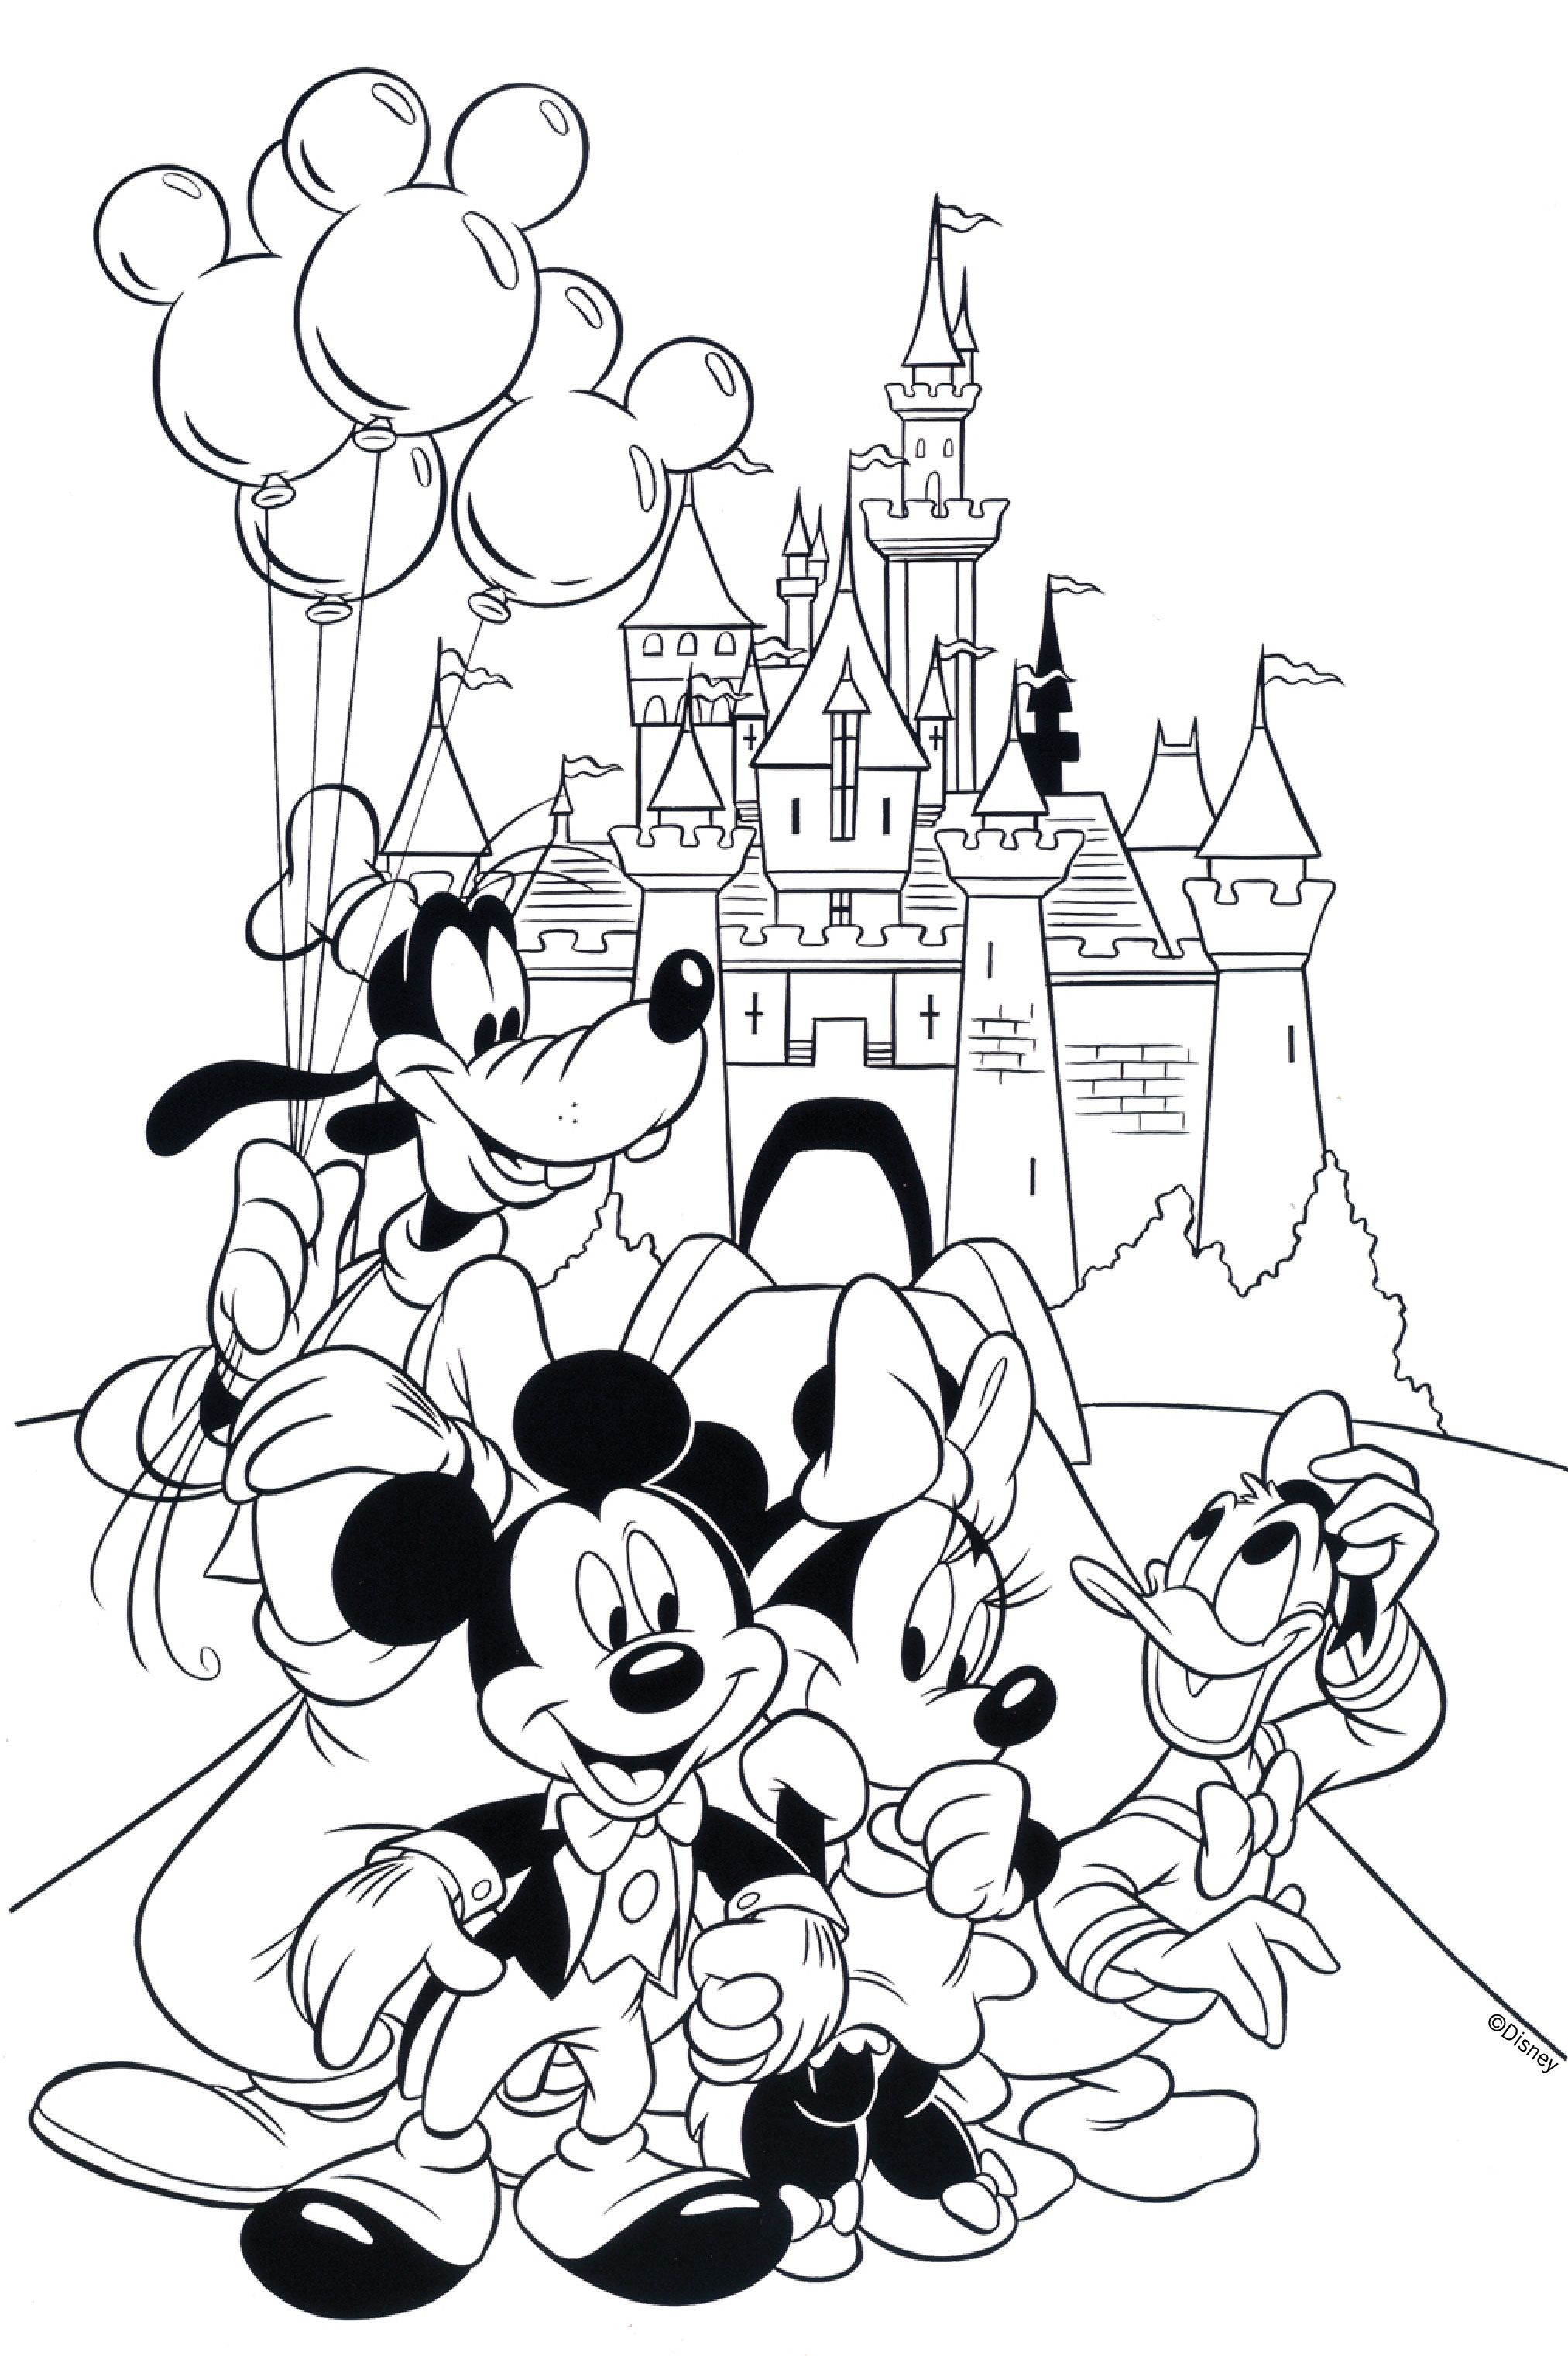 free disney coloring page printable - Free Printable Disney Coloring Pages For Kids